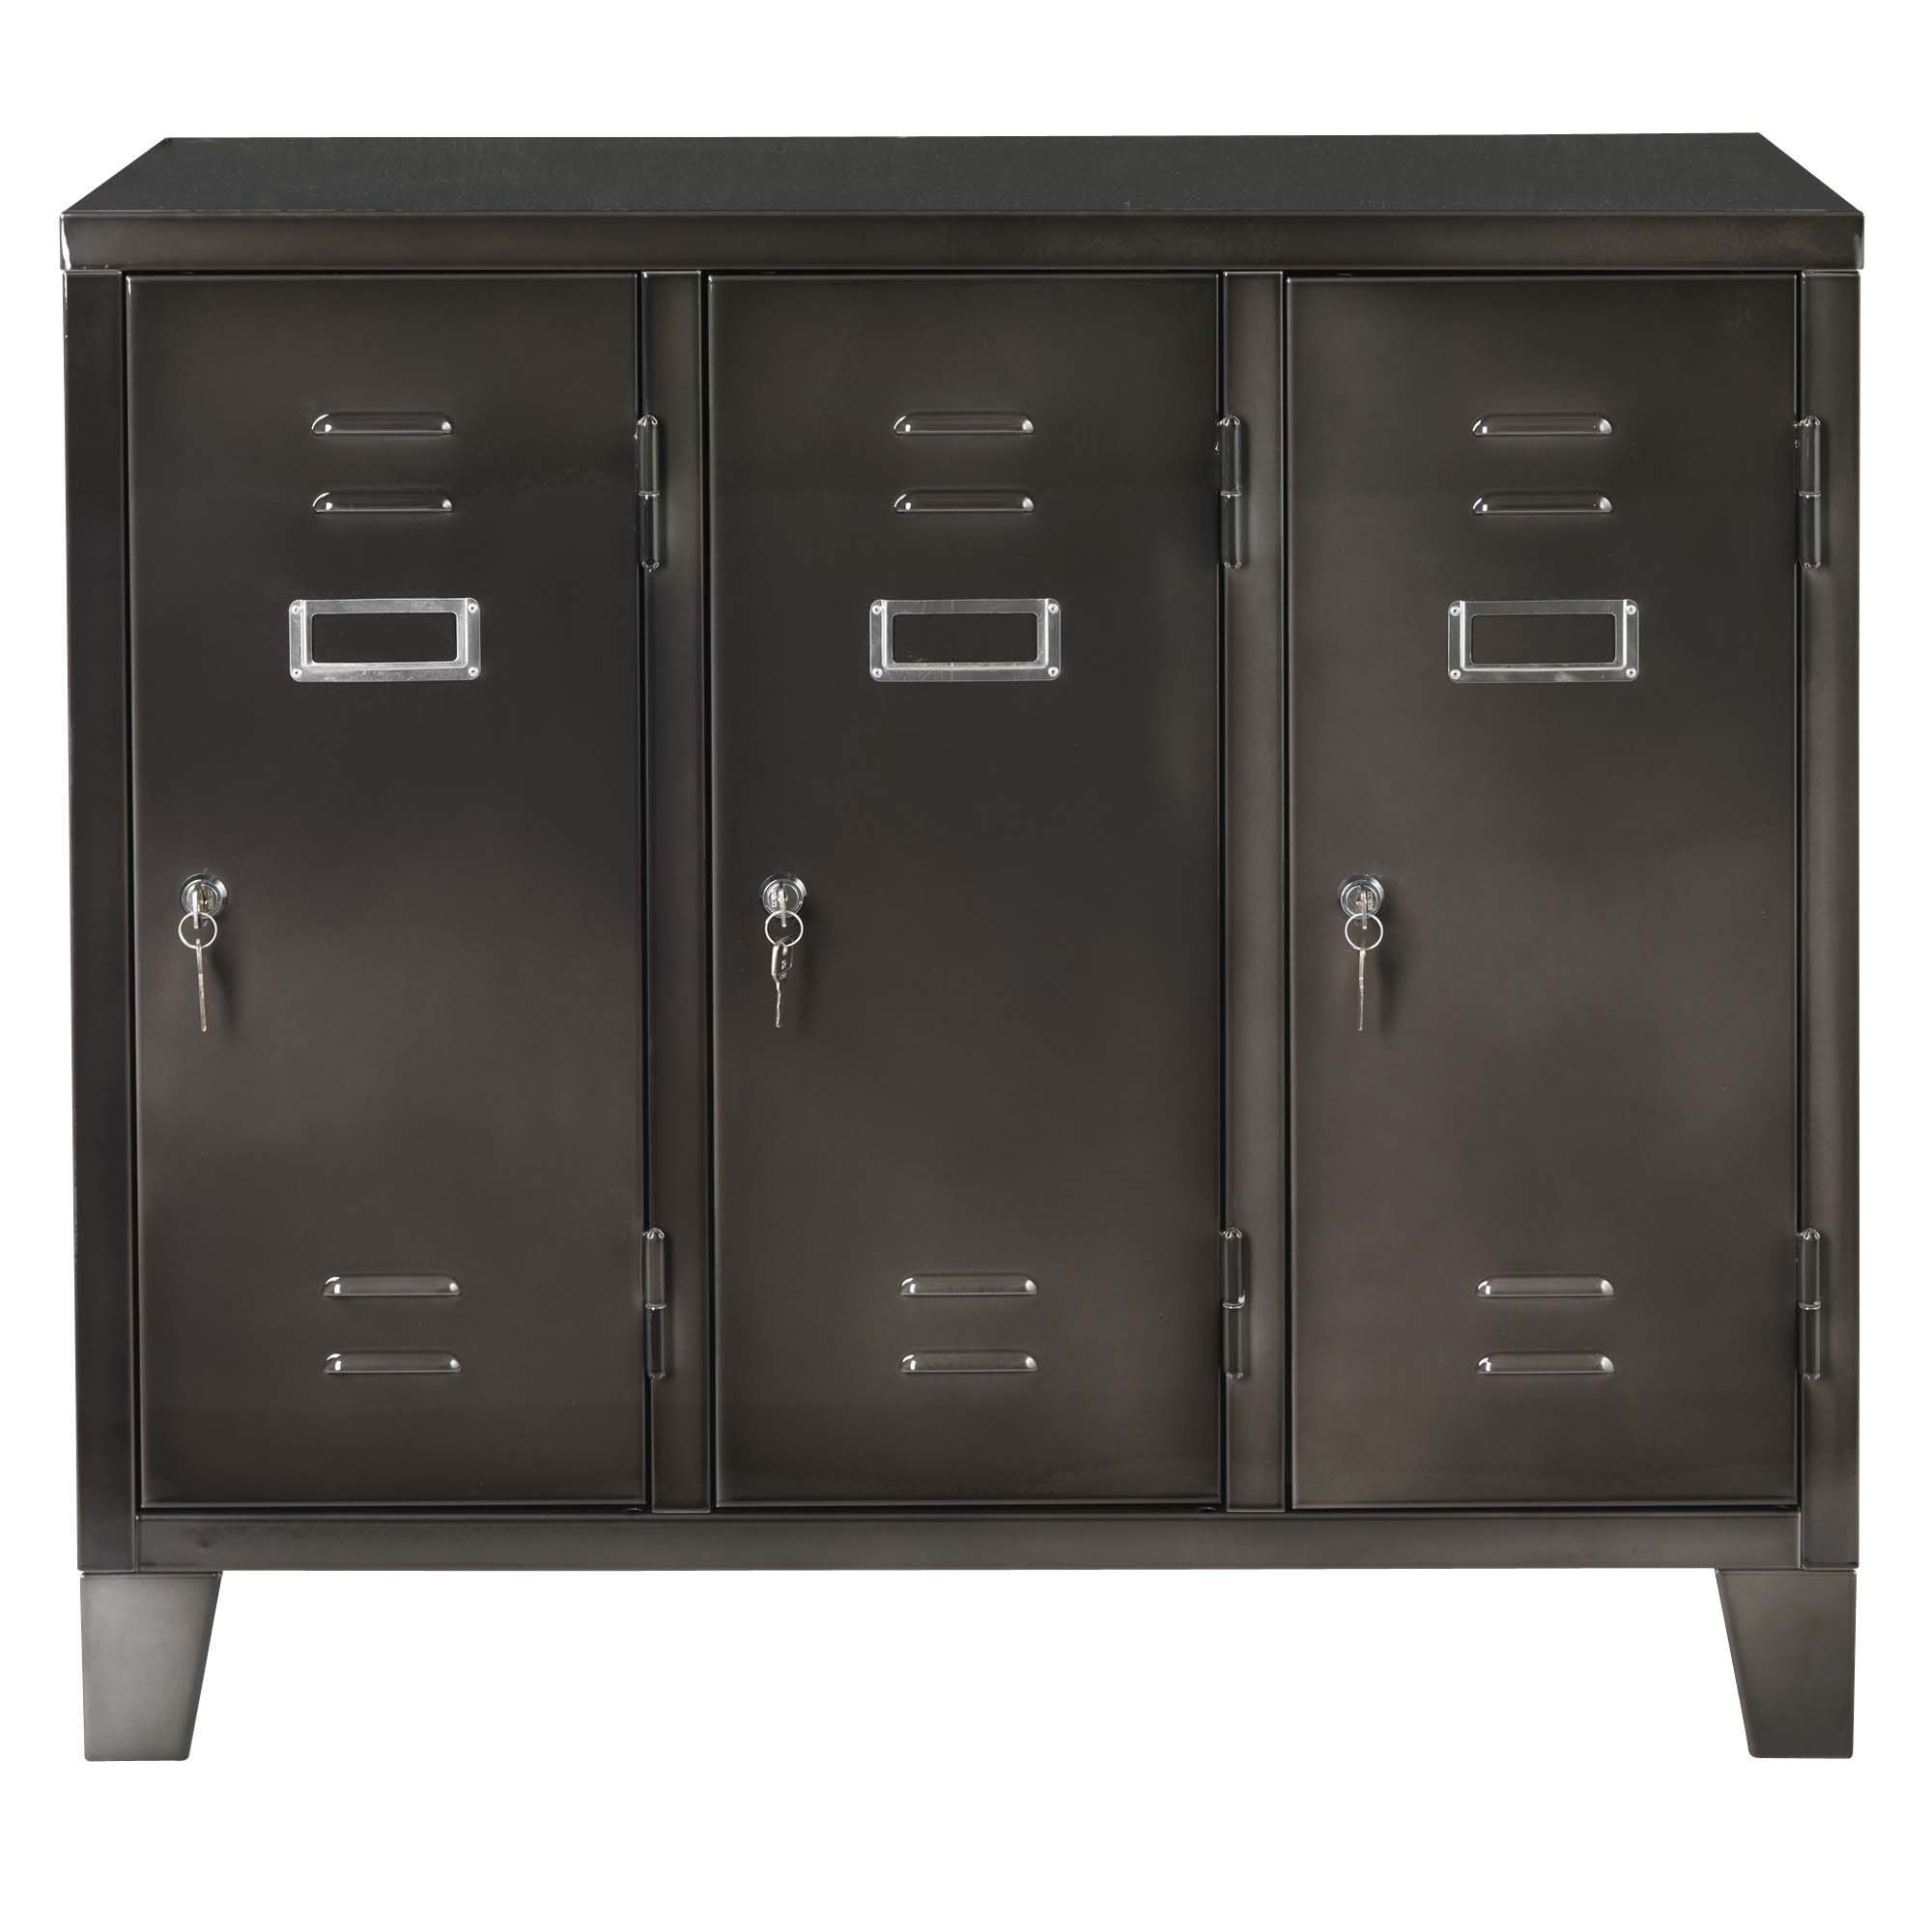 caisson 3 portes gris larsen les caissons les rangements bureau d coration d 39 int rieur. Black Bedroom Furniture Sets. Home Design Ideas